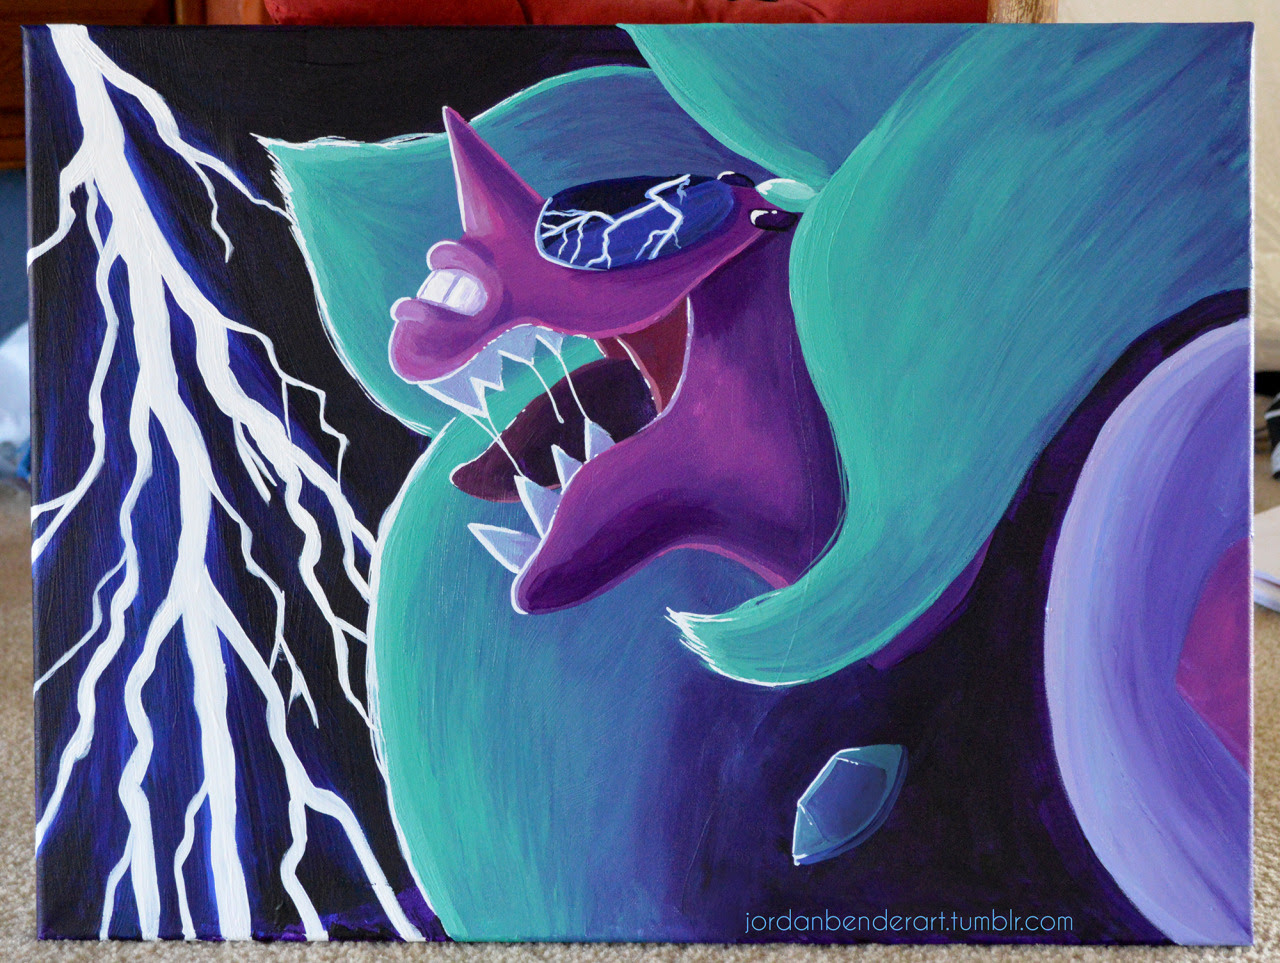 18x24 inch painting of Alexandrite. I drew the same thing with markers a little bit ago and I decided to paint it as well! Original is for sale but you can also get prints!Message me for inquiries!